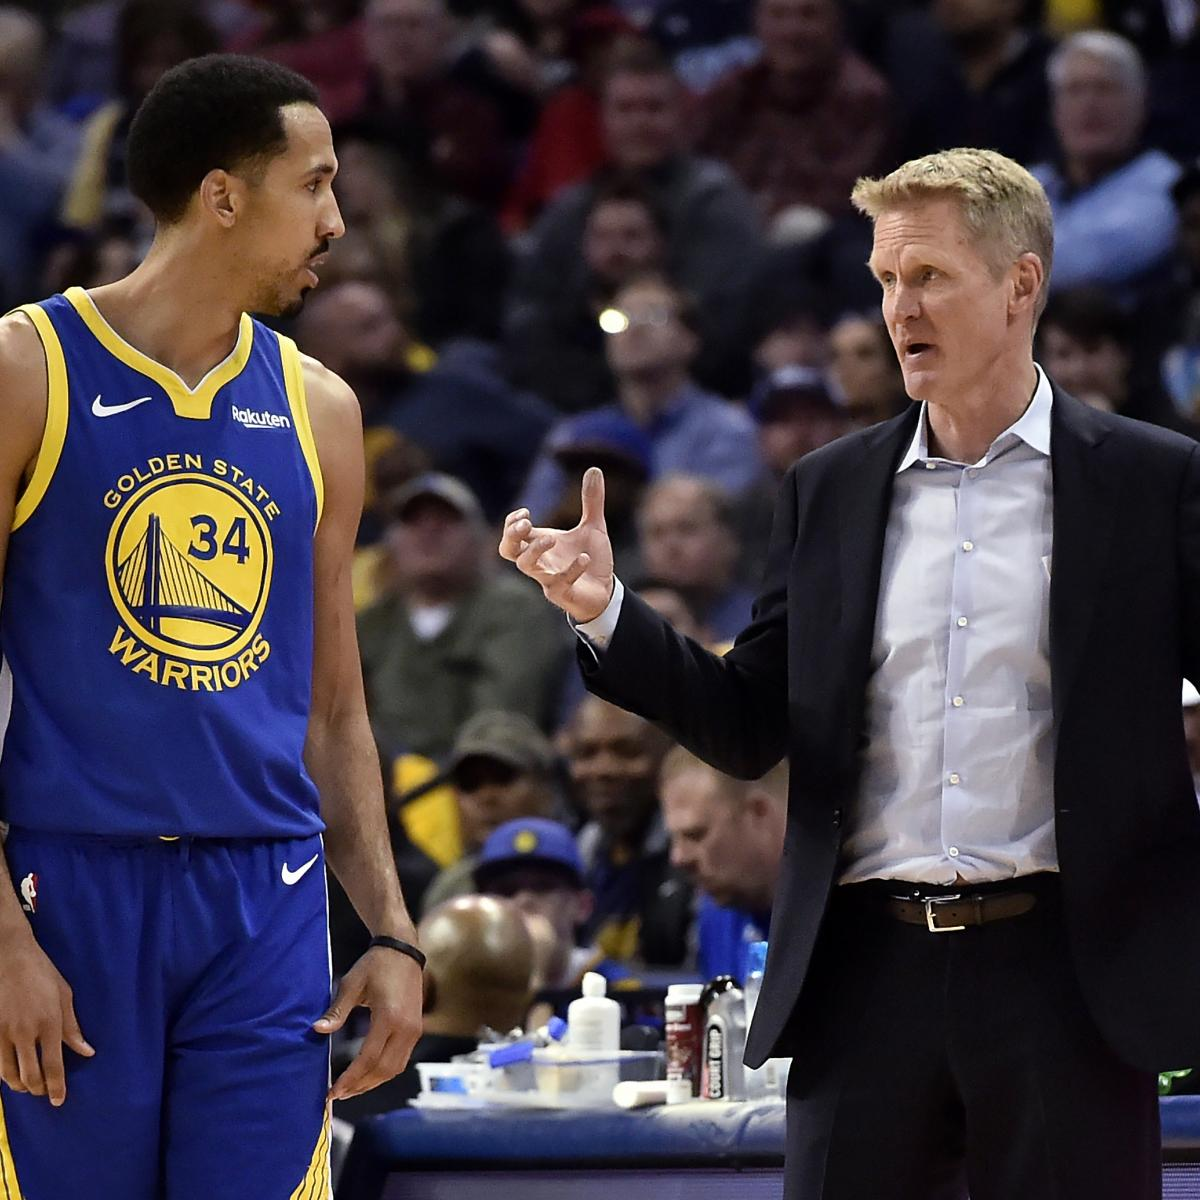 Bleacher Report Nba Staff S 2019 Playoff Predictions: NBA Playoffs 2019: TV Schedule And Predictions For